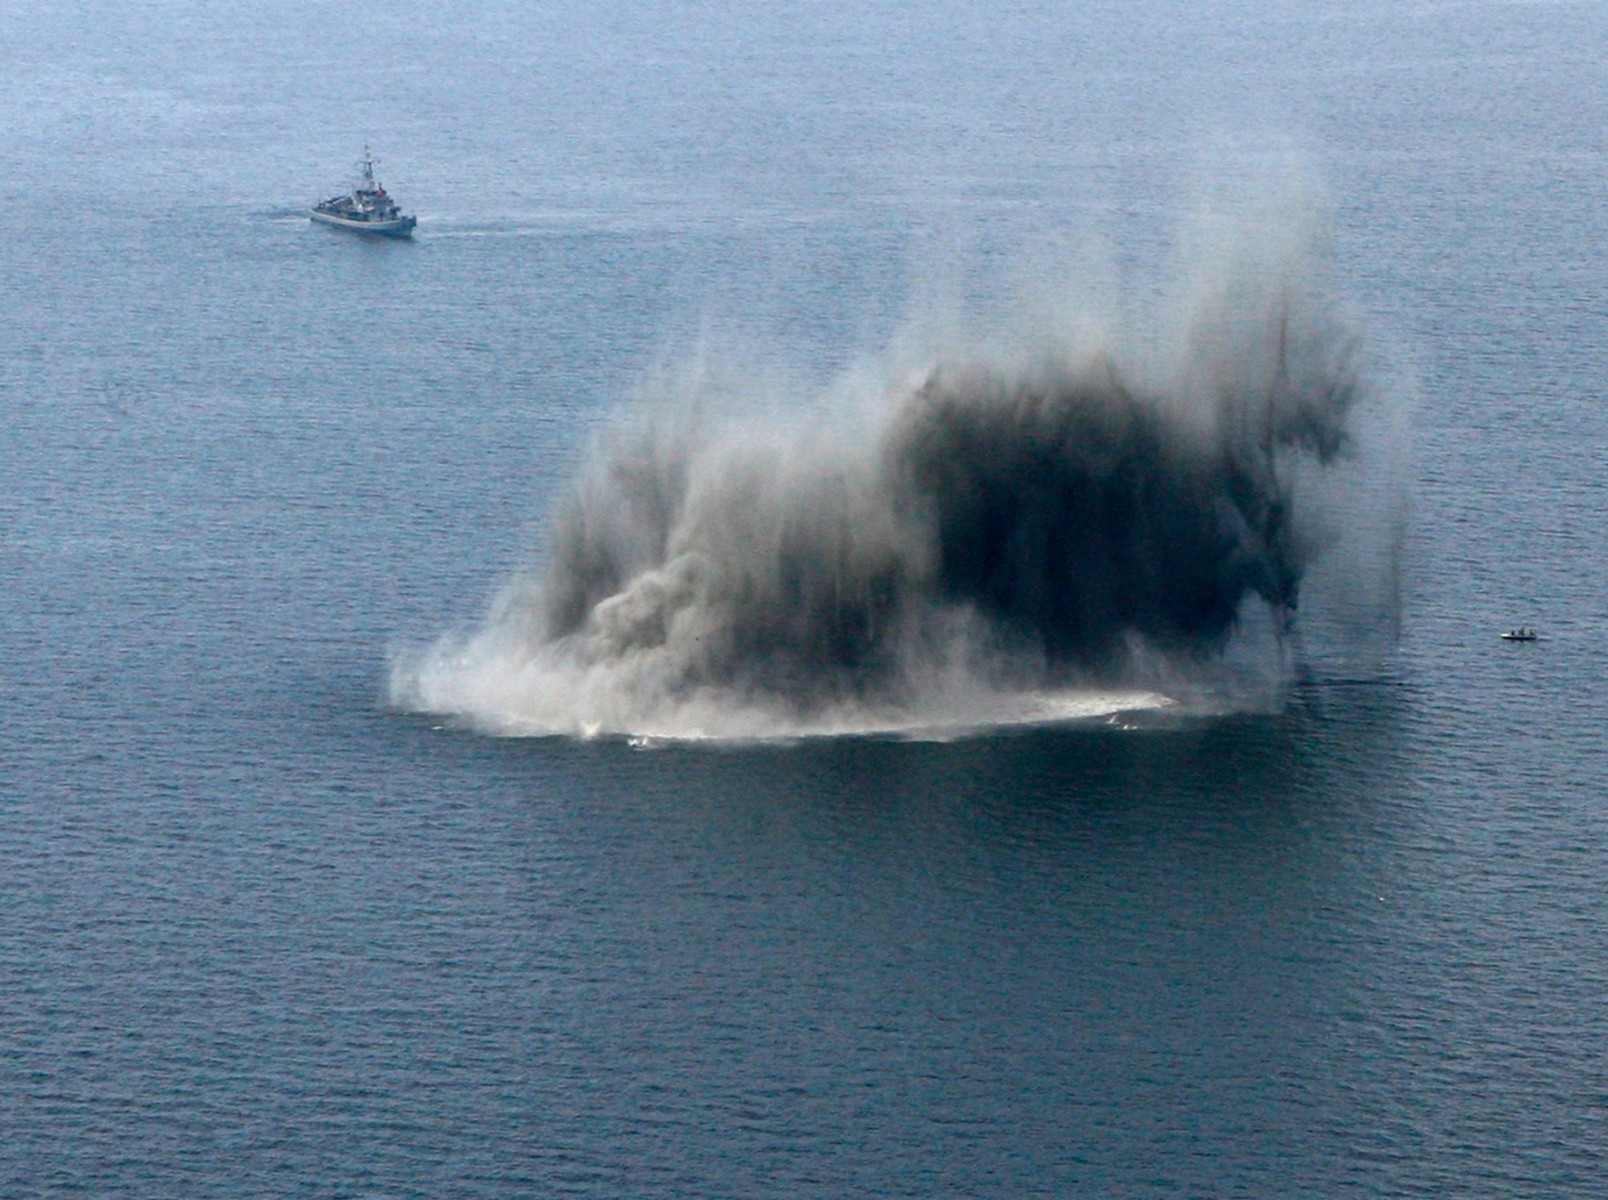 Houthi mines threaten global navigation in Red Sea, Iran involved